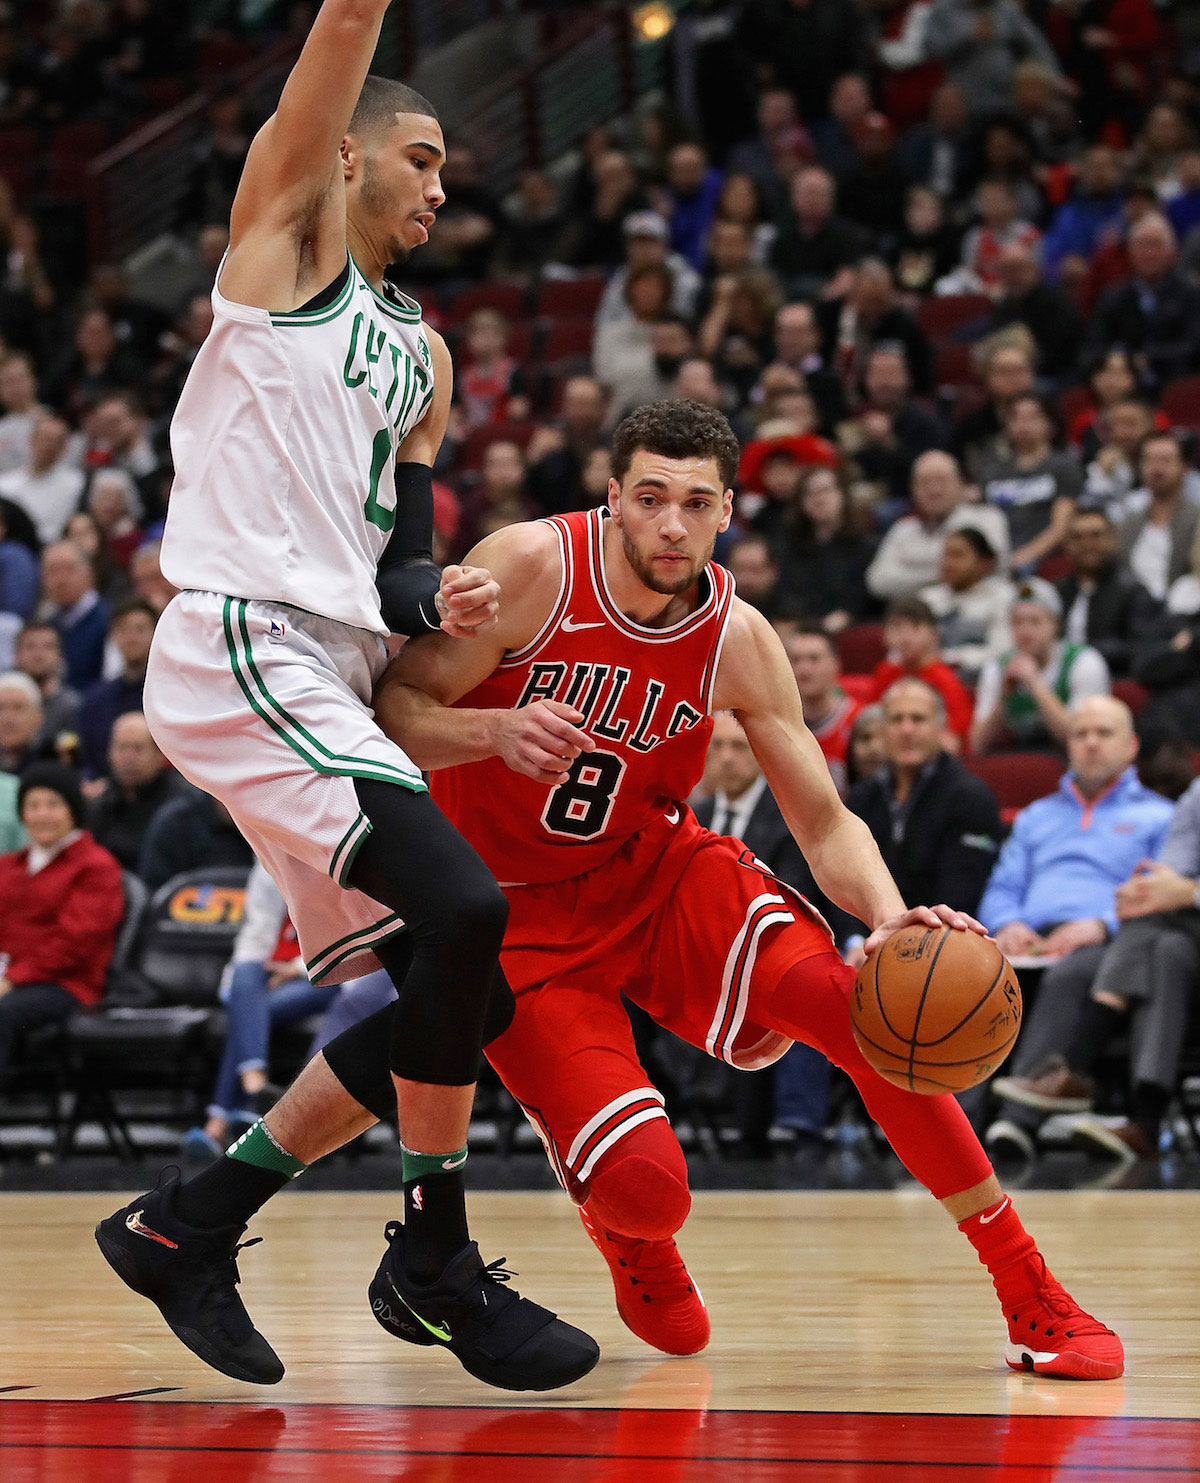 Zach LaVine #8 of the Chicago Bulls drives against Jayson Tatum #0 of the Boston Celtics at the United Center on March 5, 2018 in Chicago, Illinois